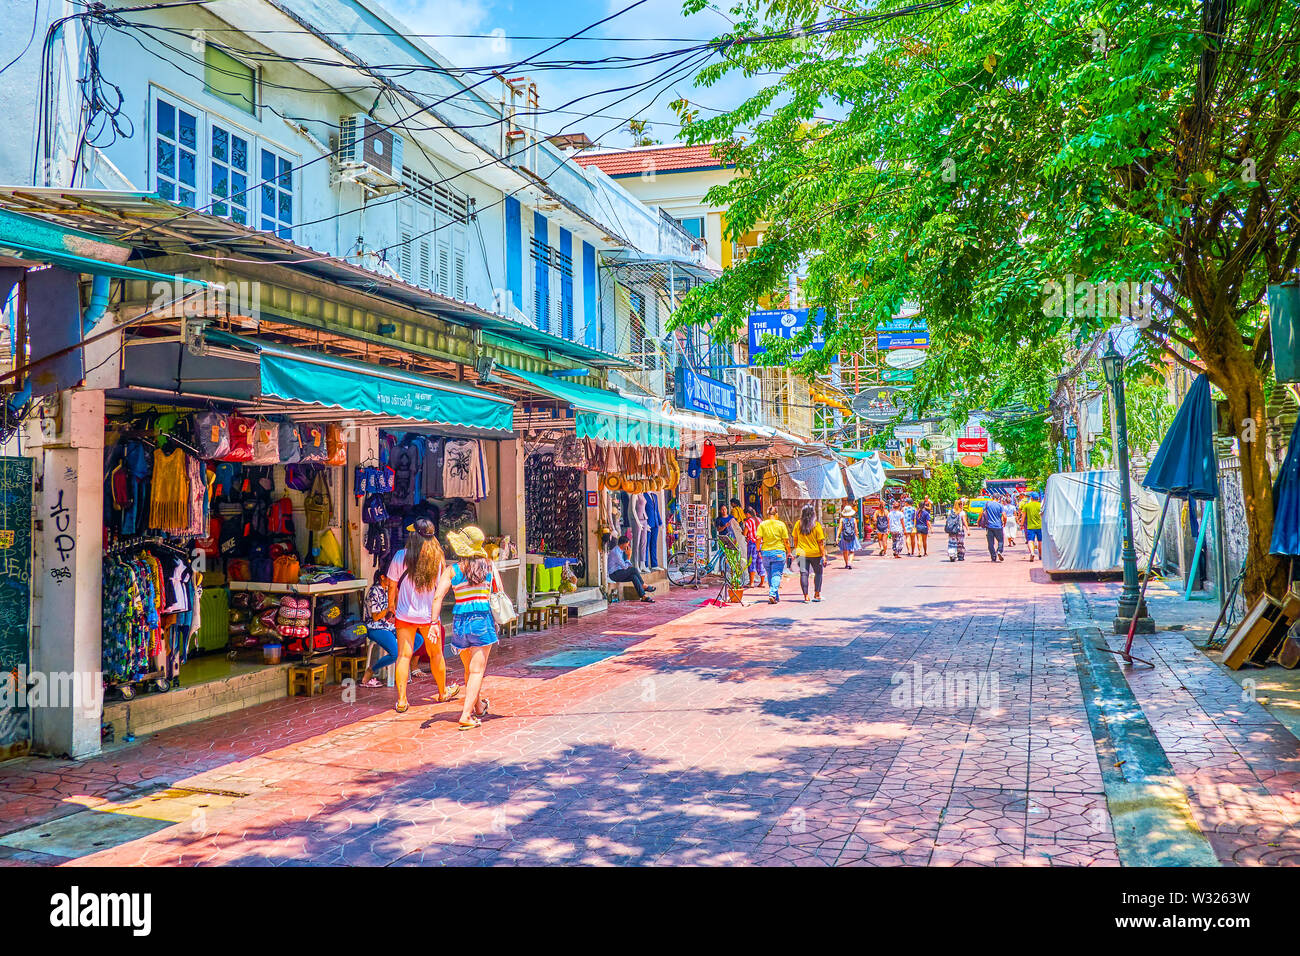 BANGKOK, THAILAND - APRIL 22, 2019: The small tourist clothing market offers variety of summer clothes, so needed in hot tropical climate, on April 22 - Stock Image